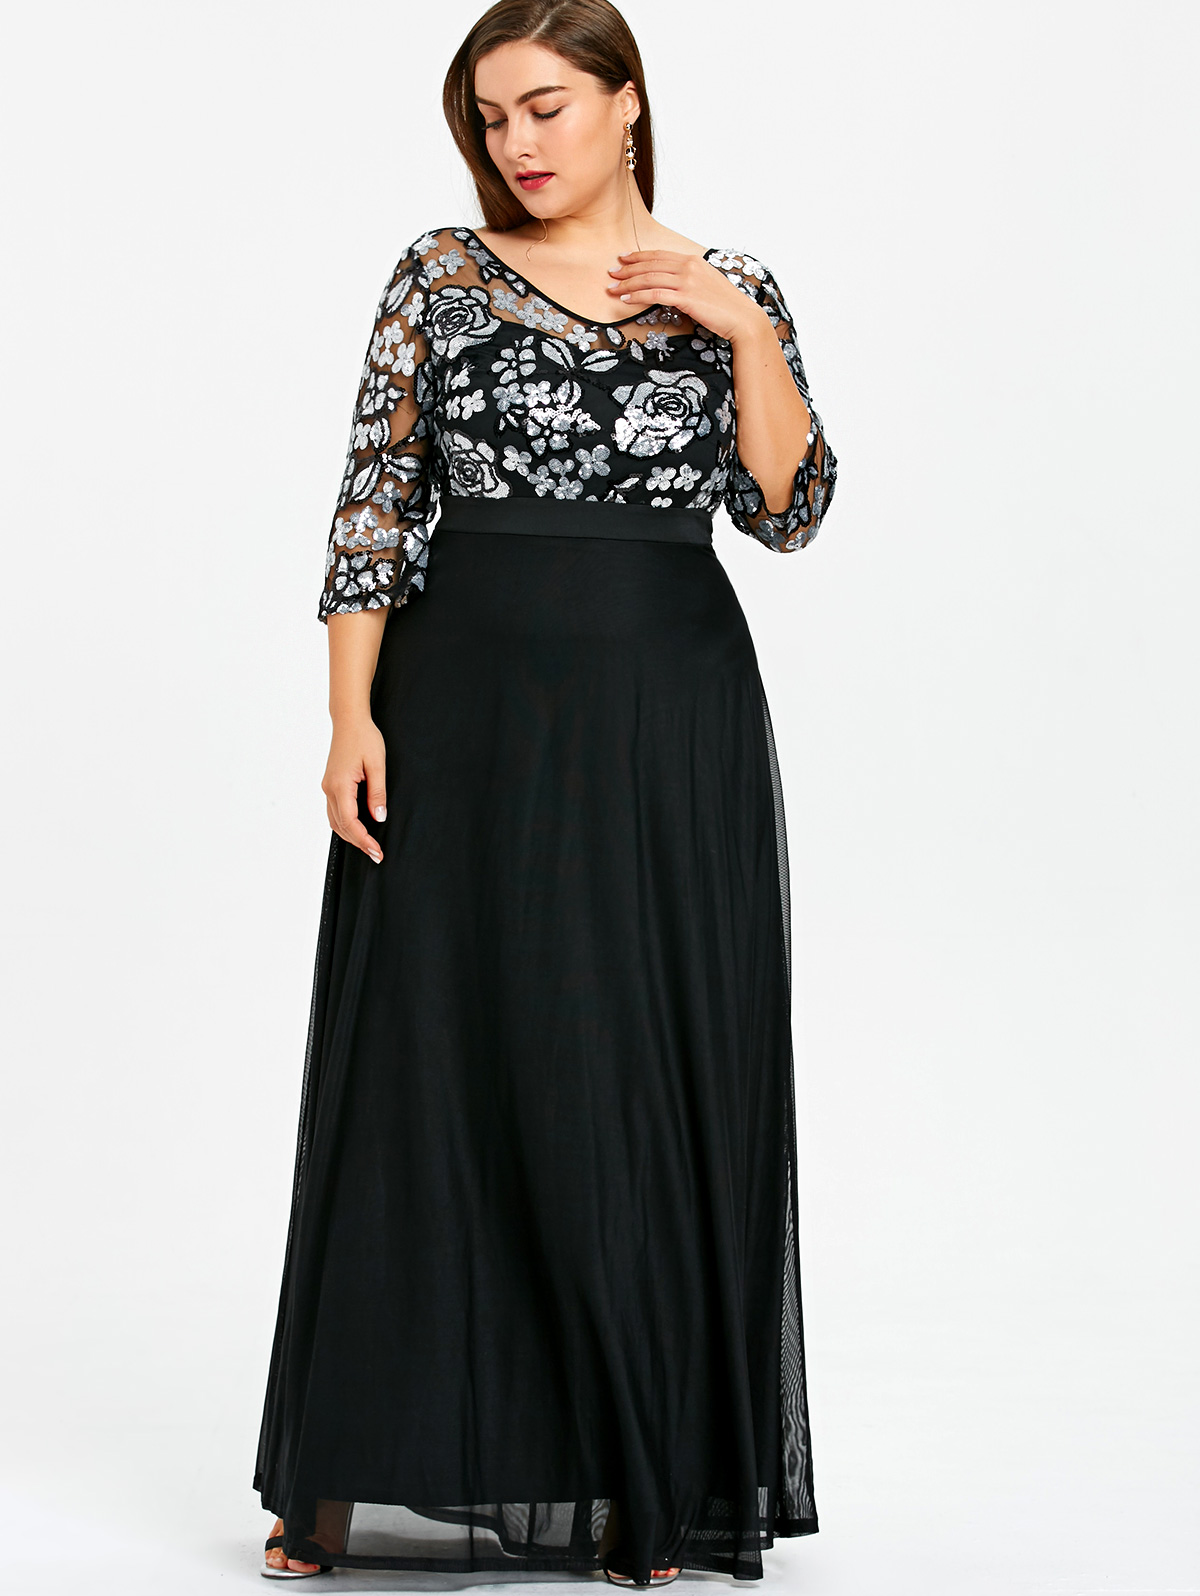 669a05366b497 Gamiss Plus Size Sequined Floral Maxi Prom Women Party Long Dress 3/4  Length Sleeves Floral High Waist Woman Formal Dresses 5XL